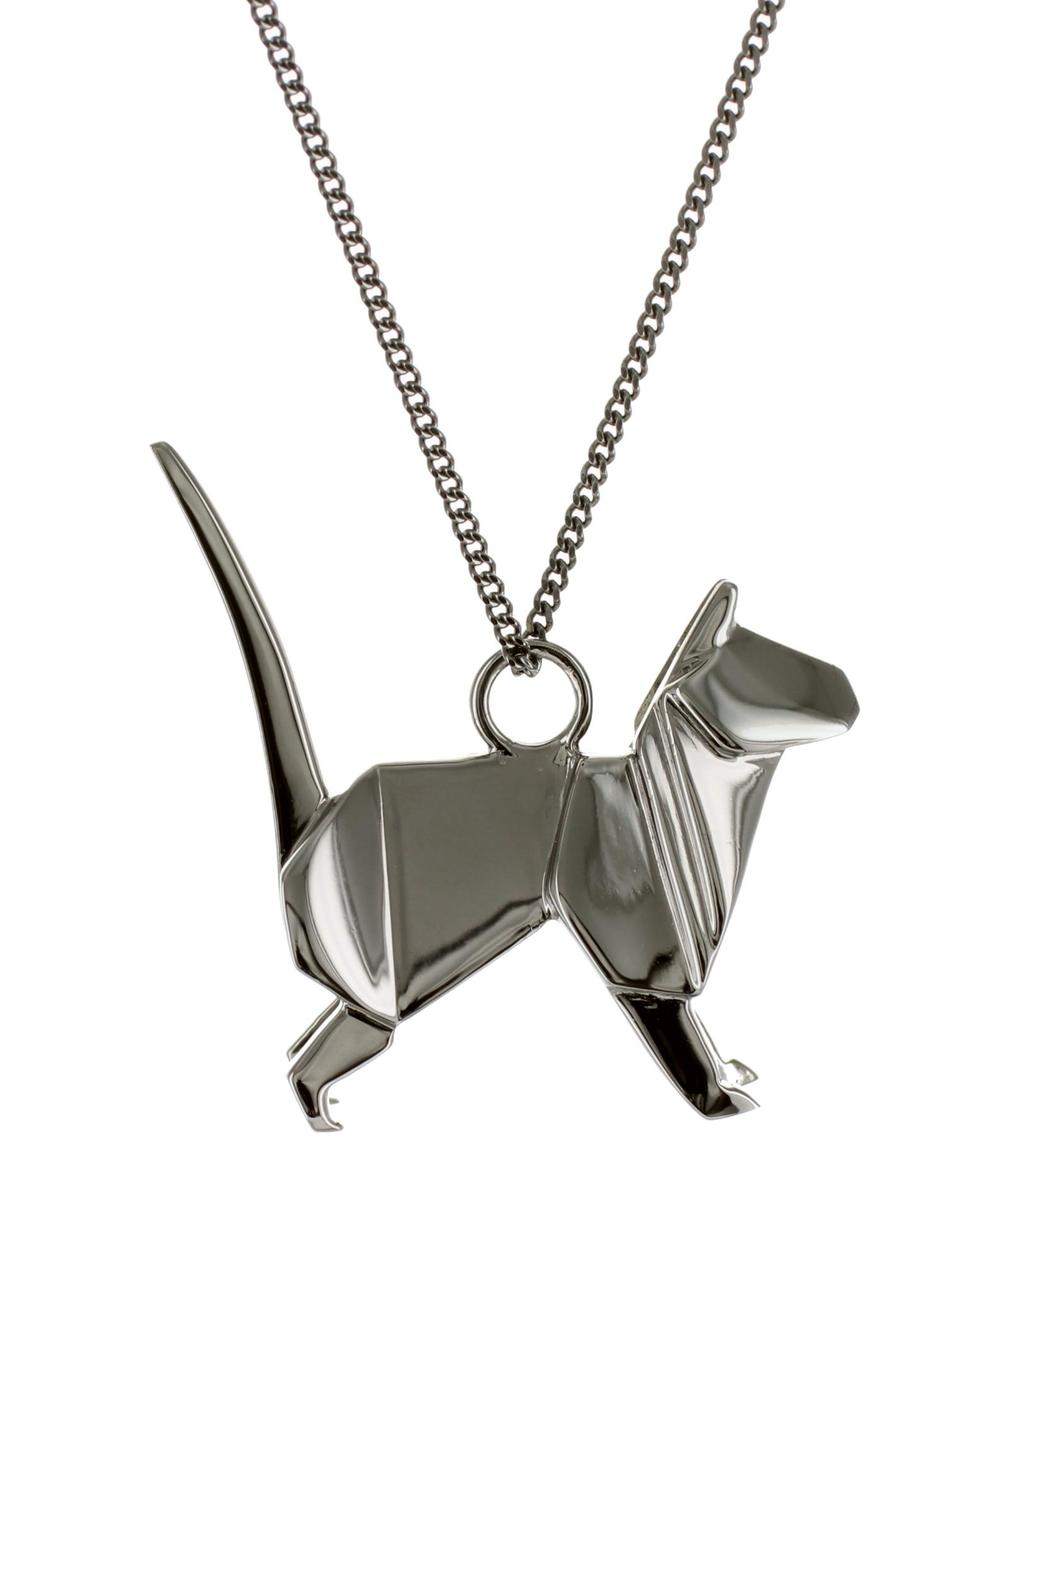 Origami Jewellery Necklace Cat Silver from Paris by ... - photo#21